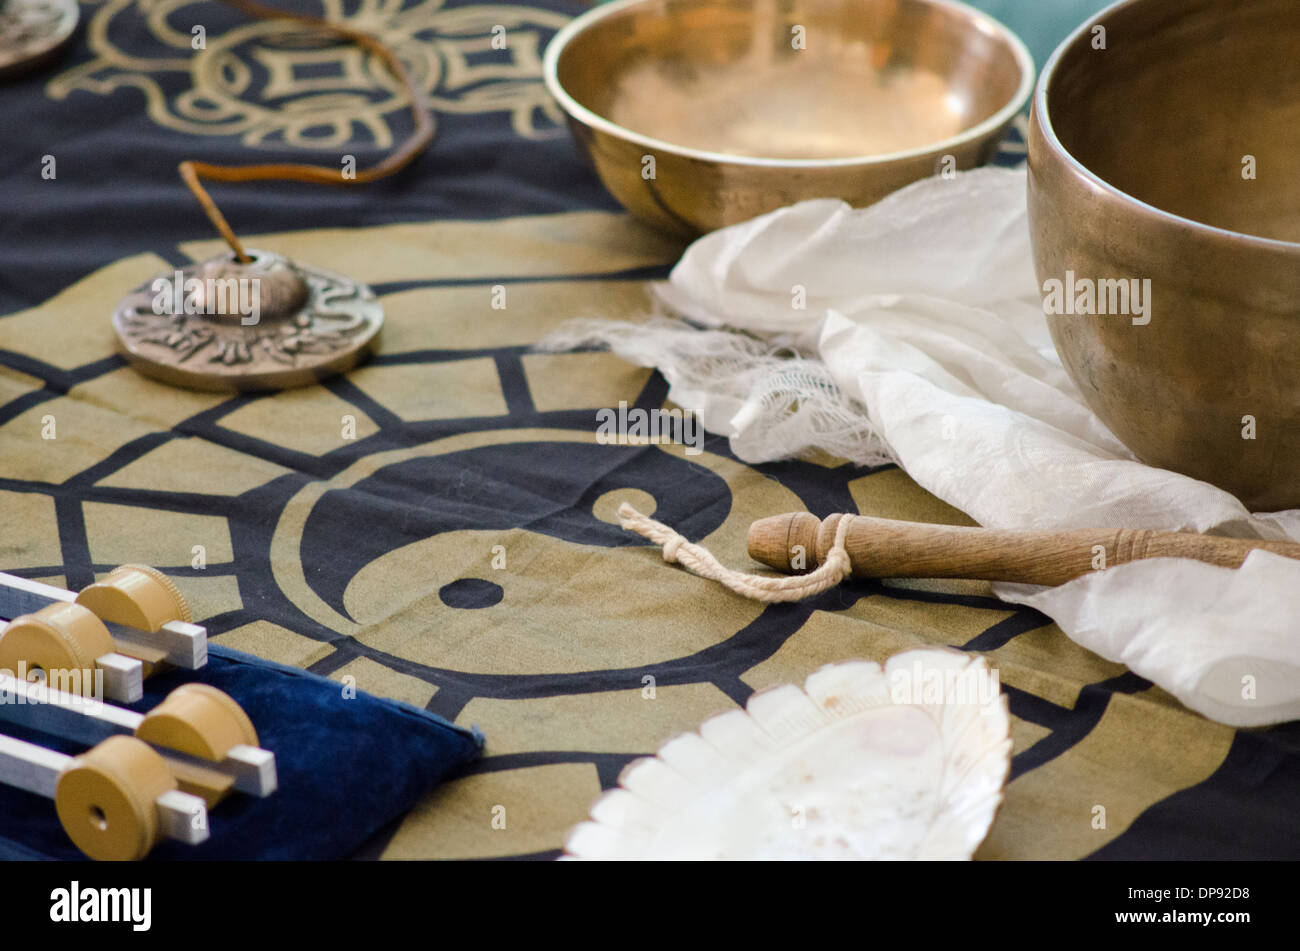 A table-top arrangement around a ying yang of tibetan healing instruments used for holistic healing. - Stock Image